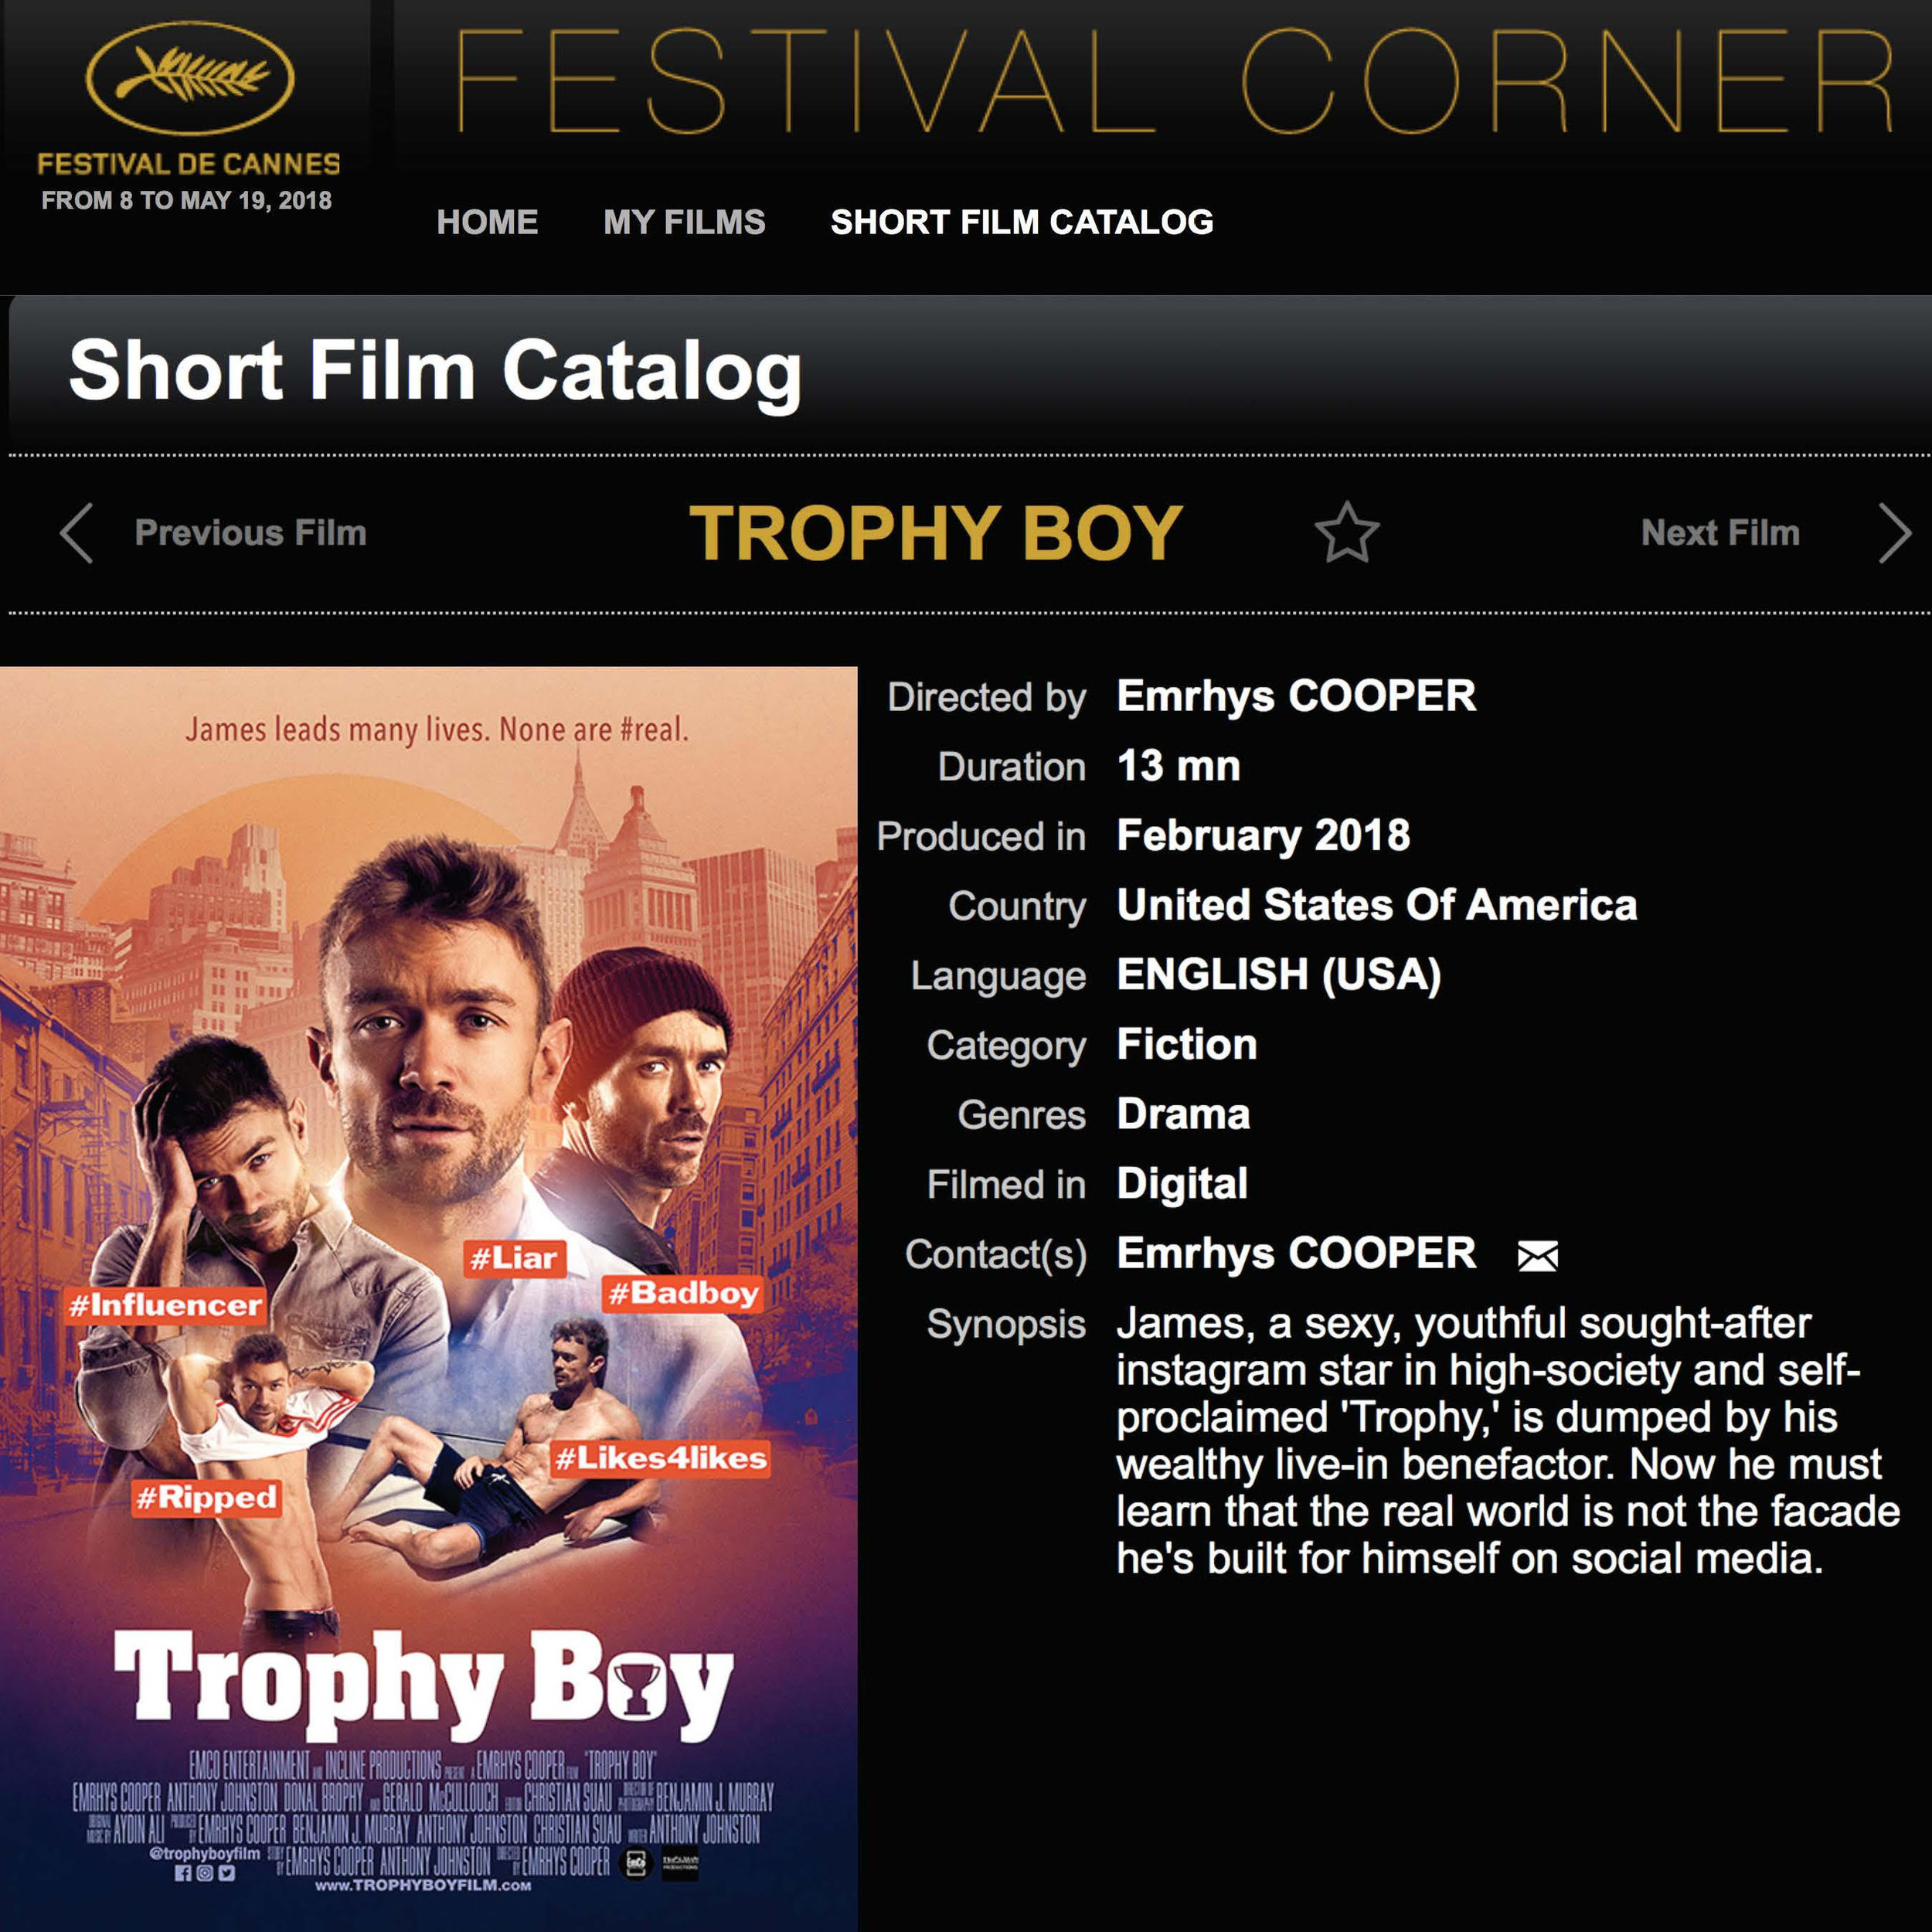 """CANNES 2018 - Cannes Short Film Corner'Trophy Boy' has been officially selected by the Cannes Short Film CornerMay 18th, 2018http://www.cannescourtmetrage.com""""CANNES FILM FESTIVAL – Emrhys Cooper's Trophy Boy is a must-see film that will make us look at ourselves! ★★★★★"""" – Film & Business Television"""